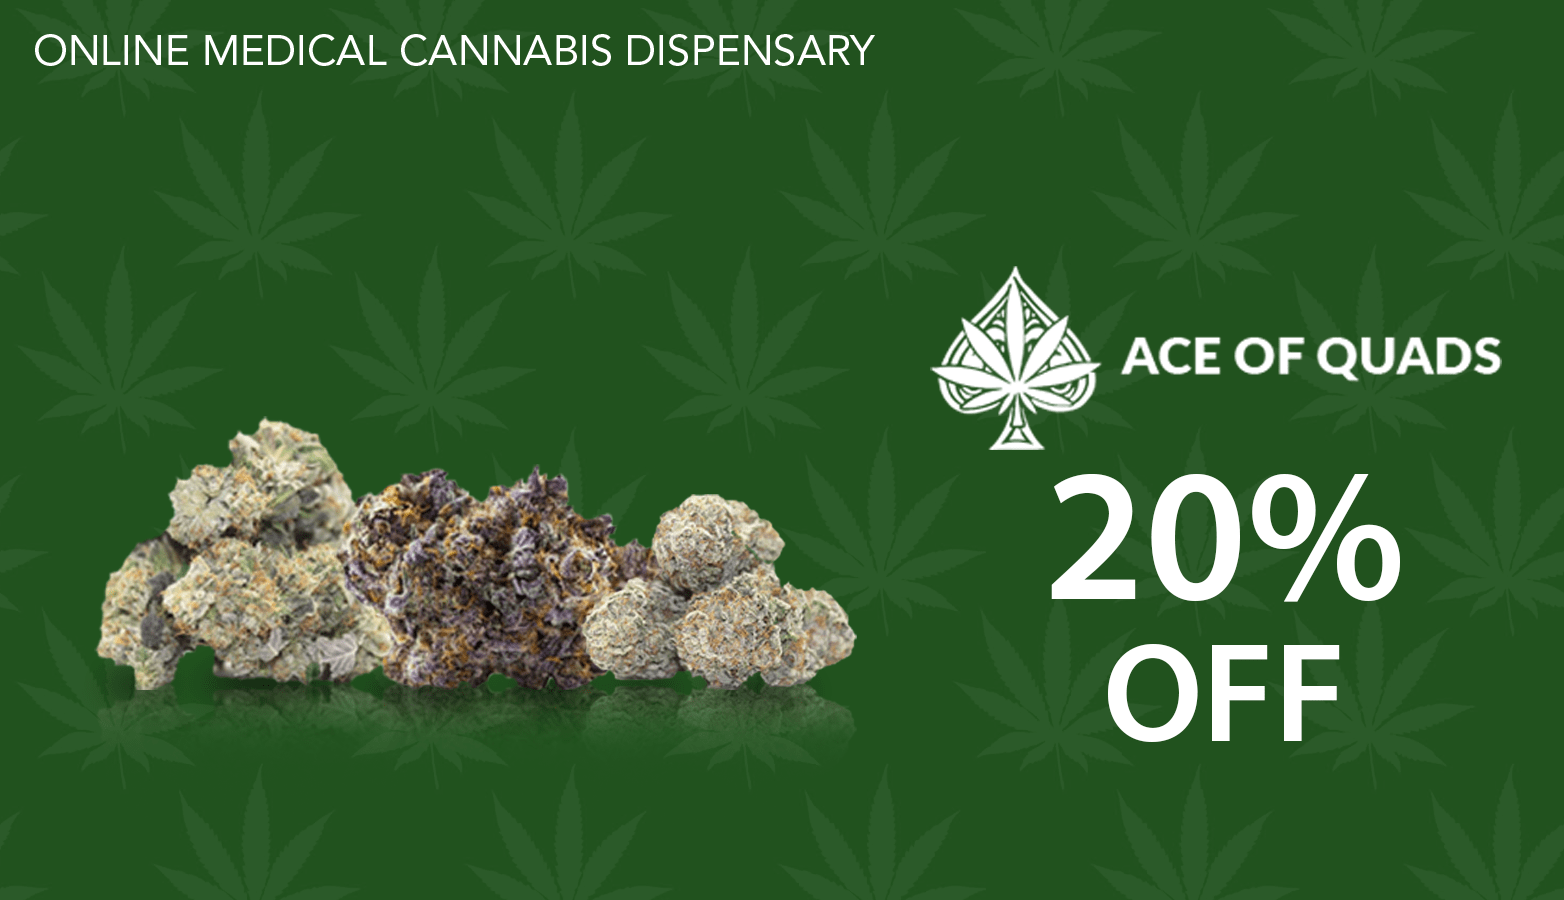 Ace of Quads CBD Coupon Code discounts promos save on cannabis online Website Redesign